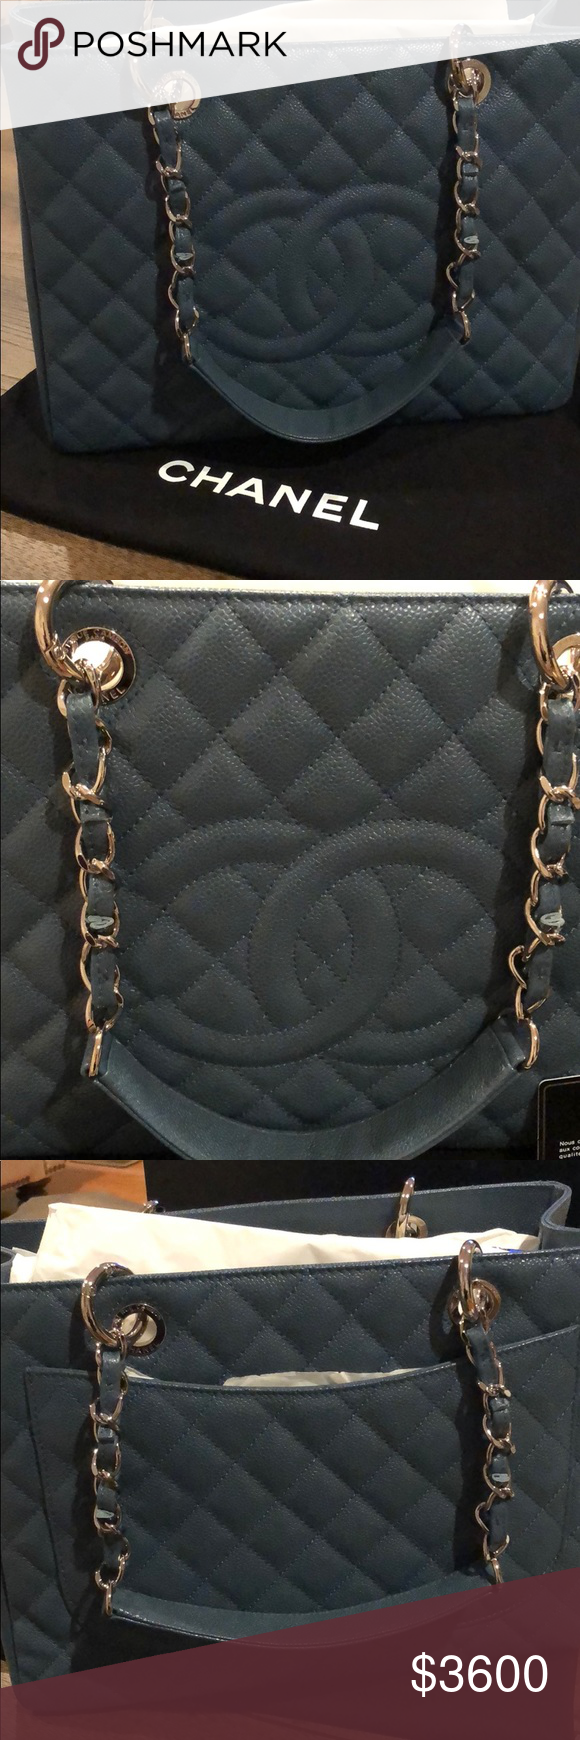 b11ba9c5ff53 Chanel Grand Shopper Tote GST brand new with tags Brand new Chanel grand  shopping tote bag in blue caviar leather. It measures 13 inches in length  10 inches ...